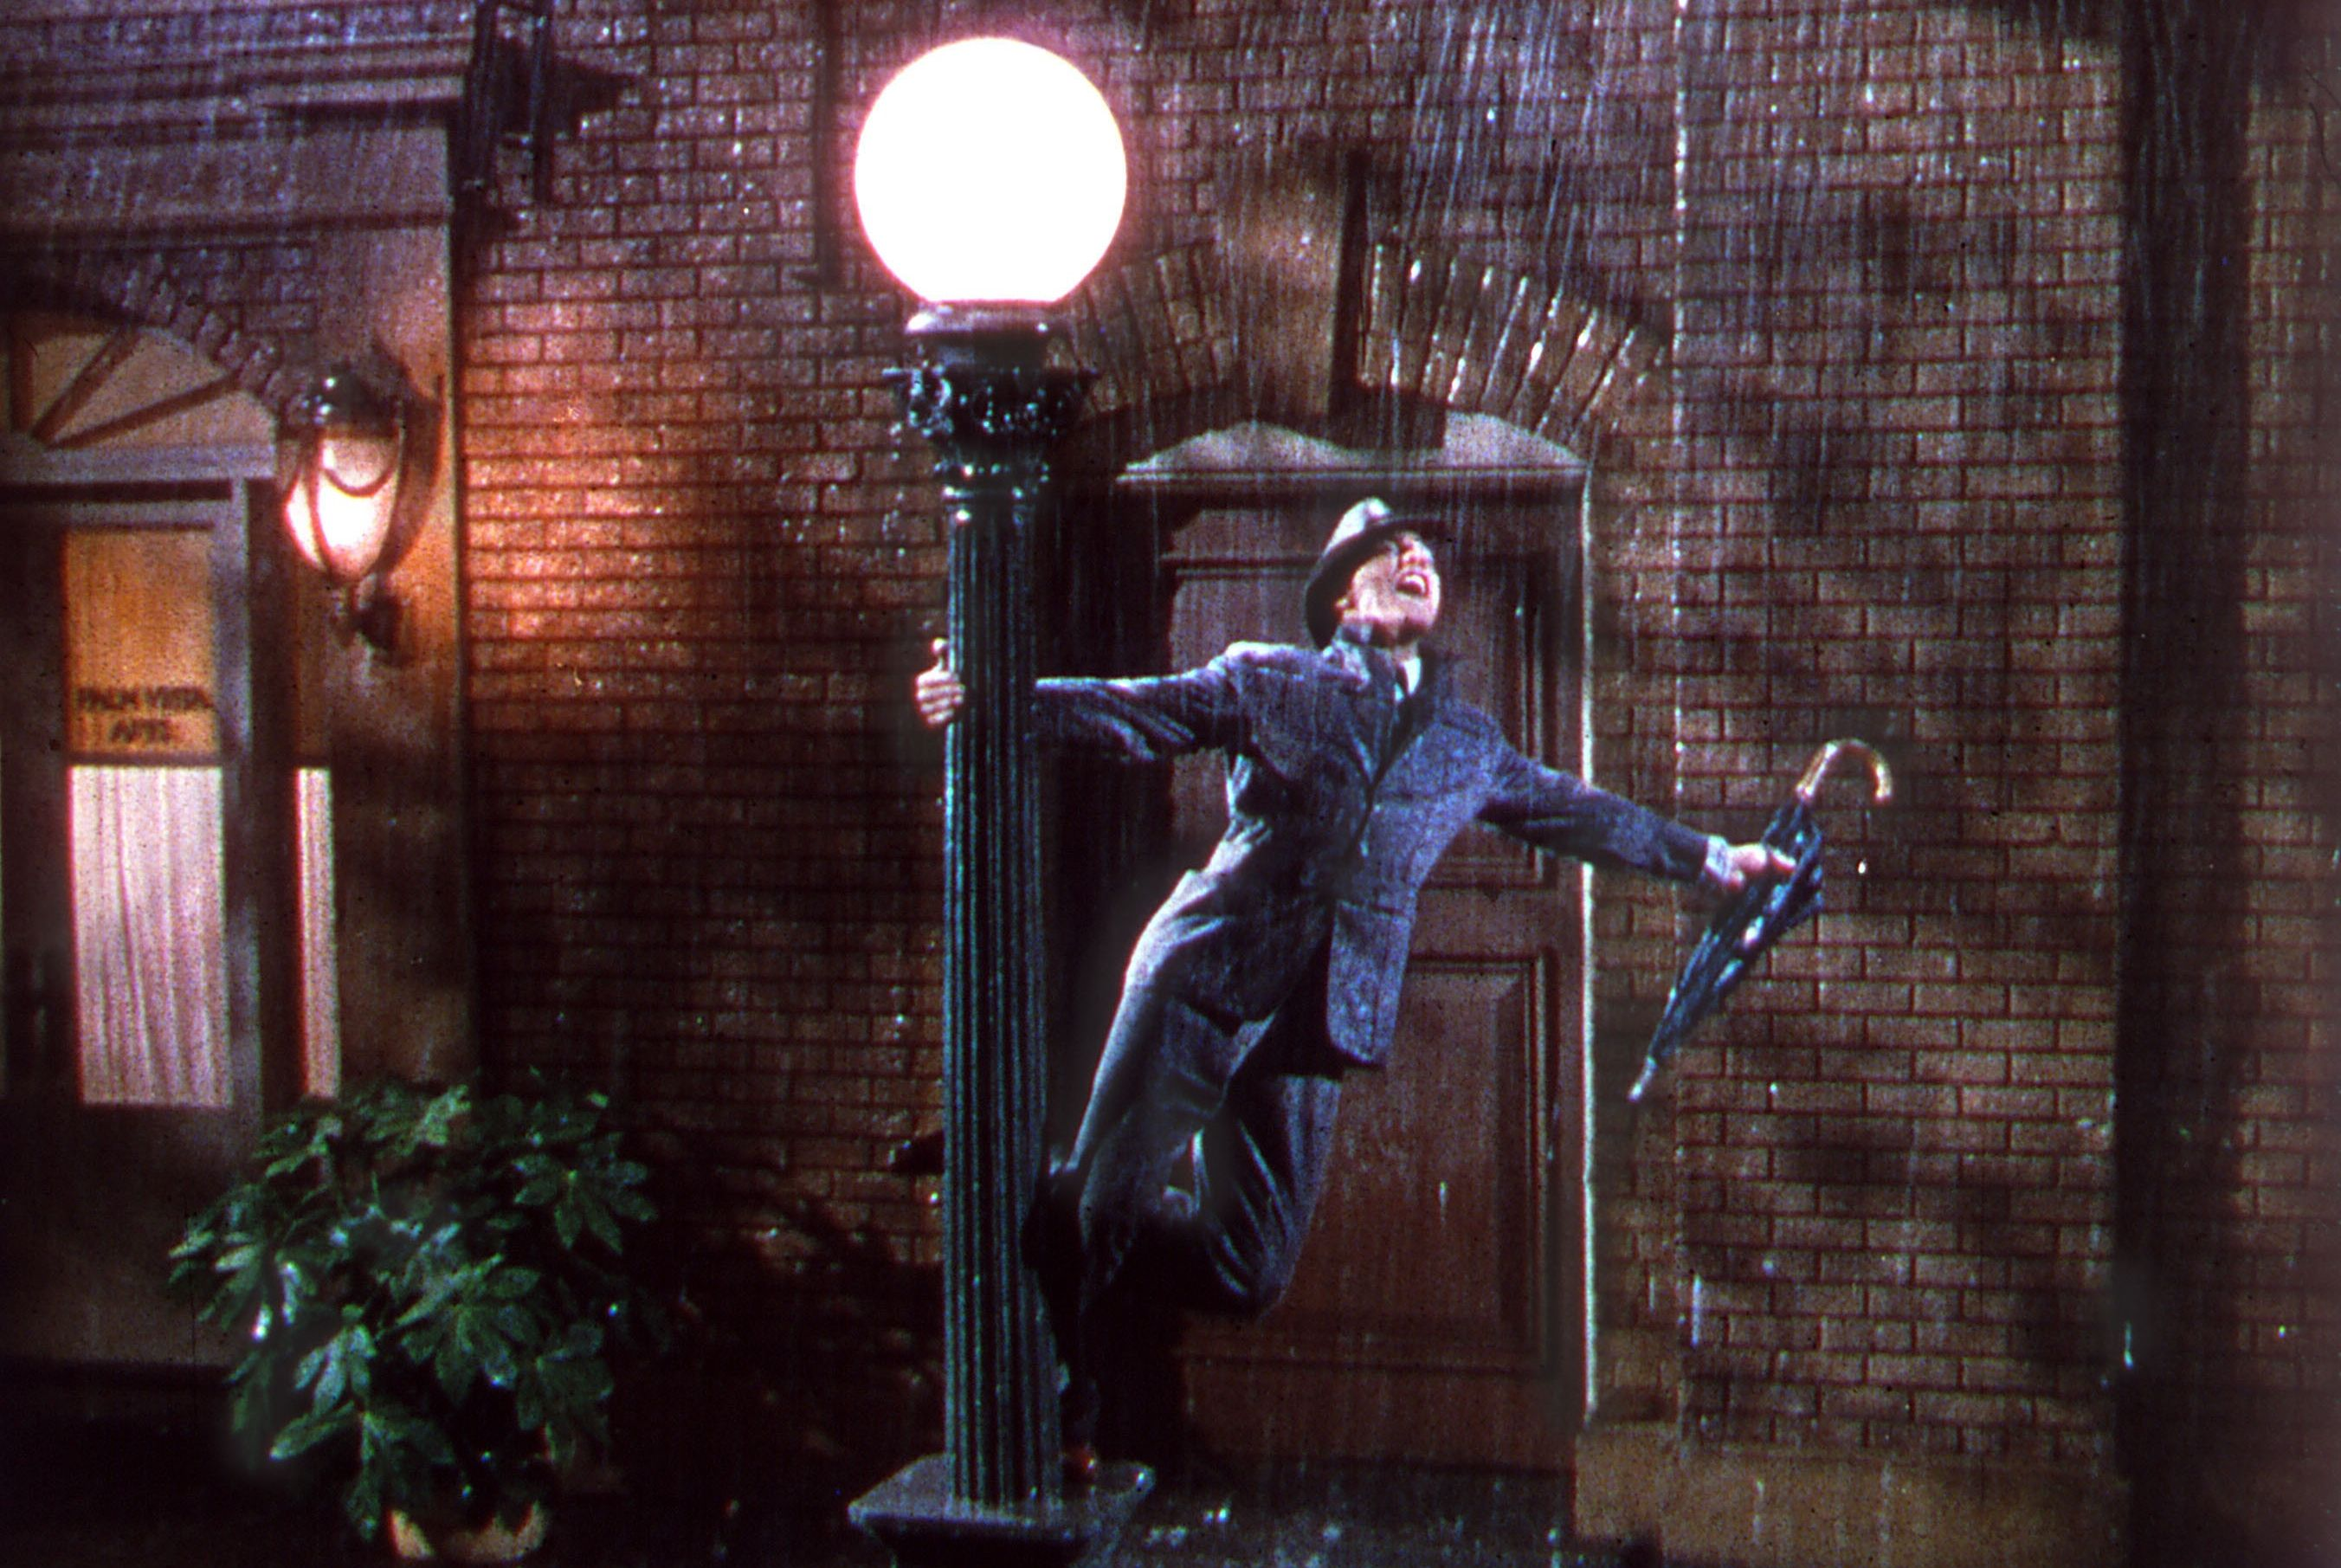 """Watch Now This MGM musical starring Gene Kelly and Debbie Reynolds was emblematic of the grand productions of the 1950s, while also poking fun at the transition from silent to sound film. Thank goodness for that glorious sound, though, without which we wouldn't have such incredible song and dance numbers as """"Singin' in the Rain,"""" and """"Good Mornin.'"""""""